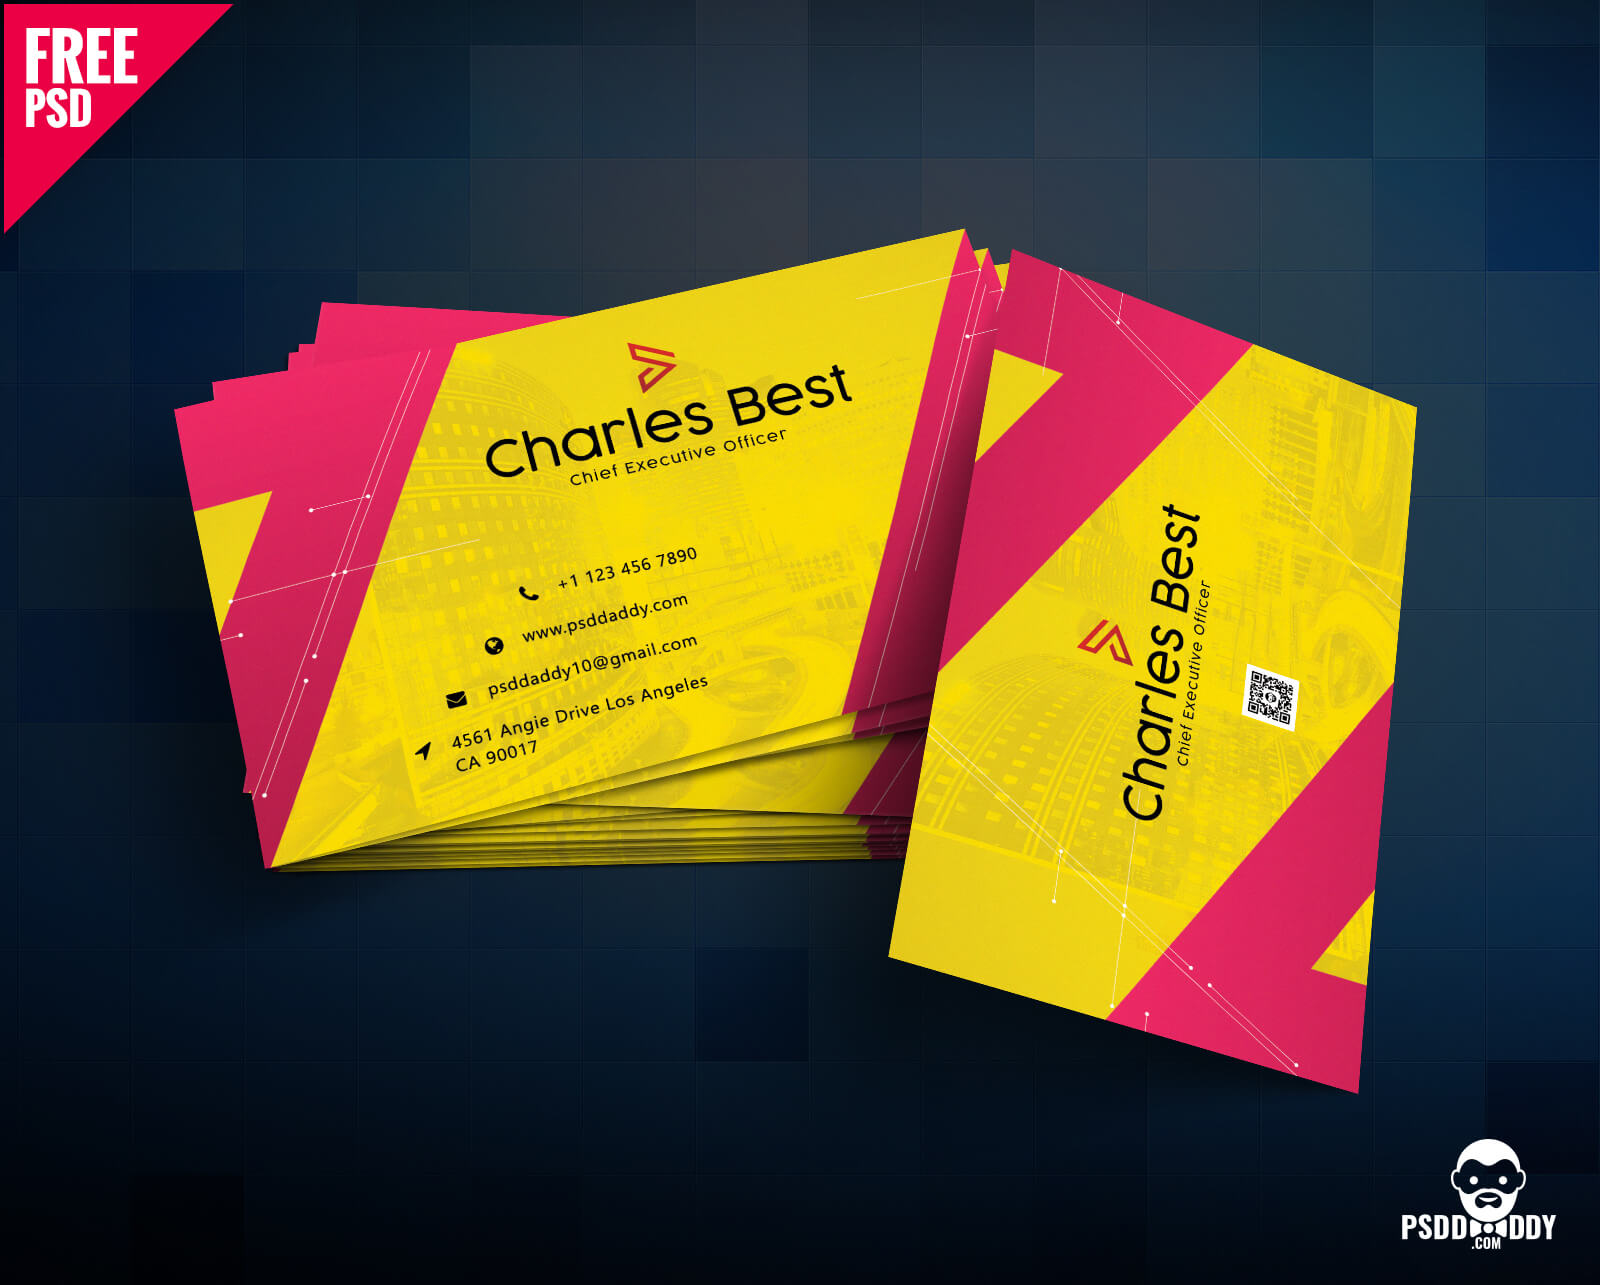 Download] Creative Business Card Free Psd | Psddaddy With Regard To Business Card Maker Template